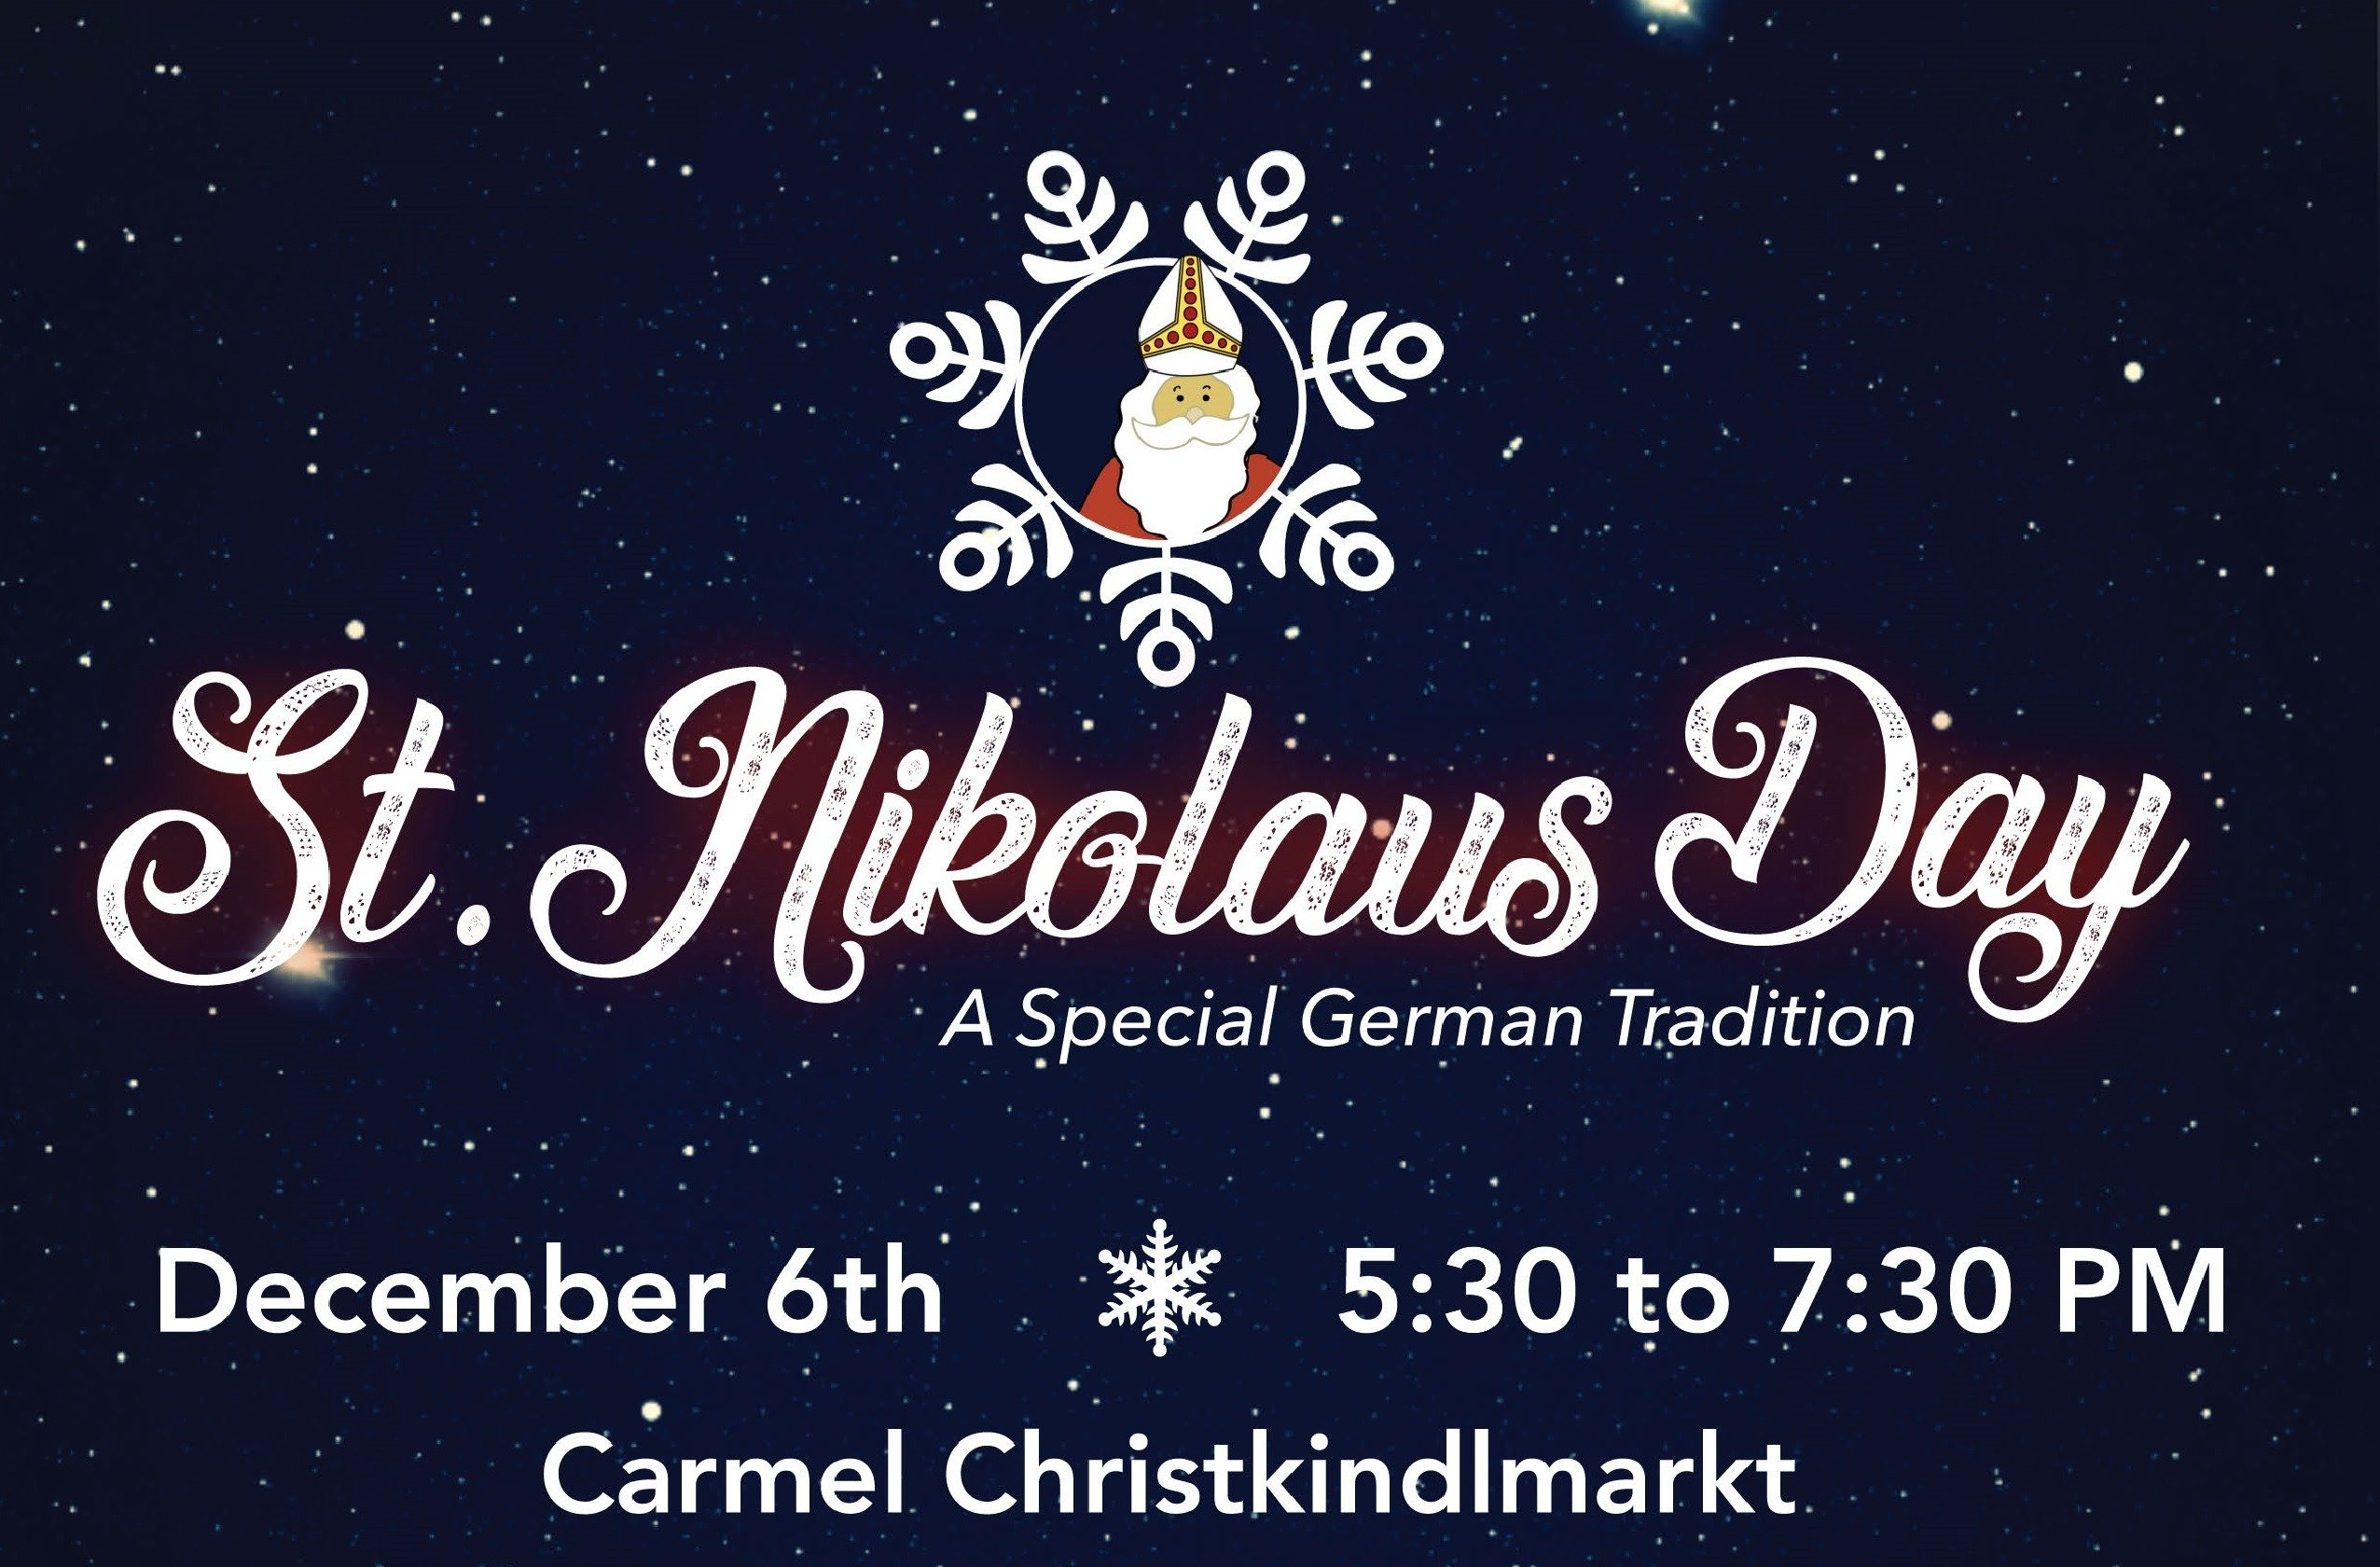 Celebrate St. Nikolaus Day at the Carmel Christkindlmarkt